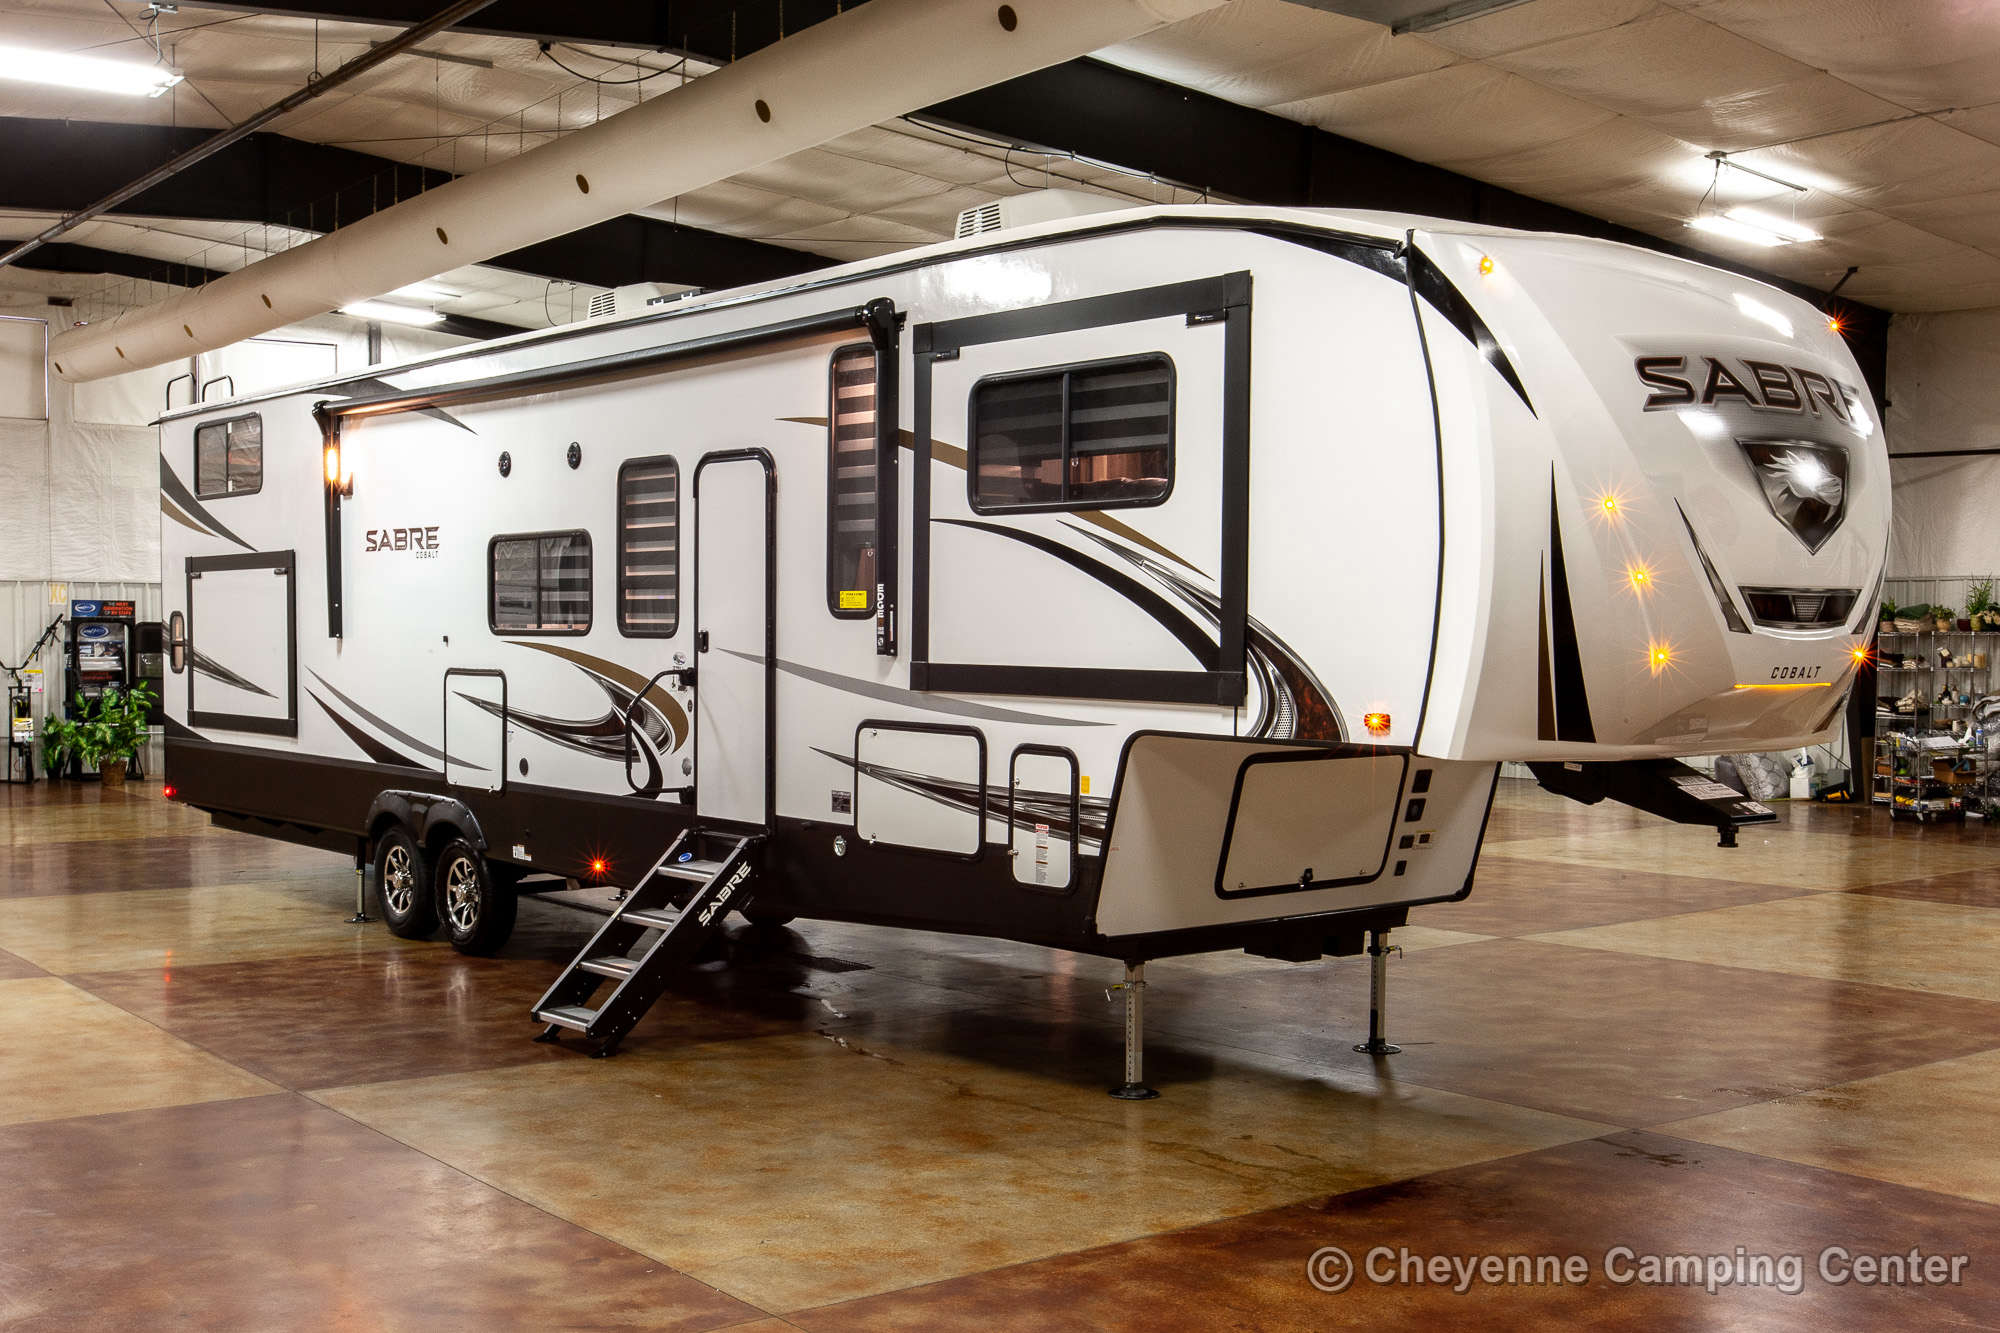 2021 Forest River Sabre Cobalt Edition 37FLL Bunkhouse Fifth Wheel Exterior Image